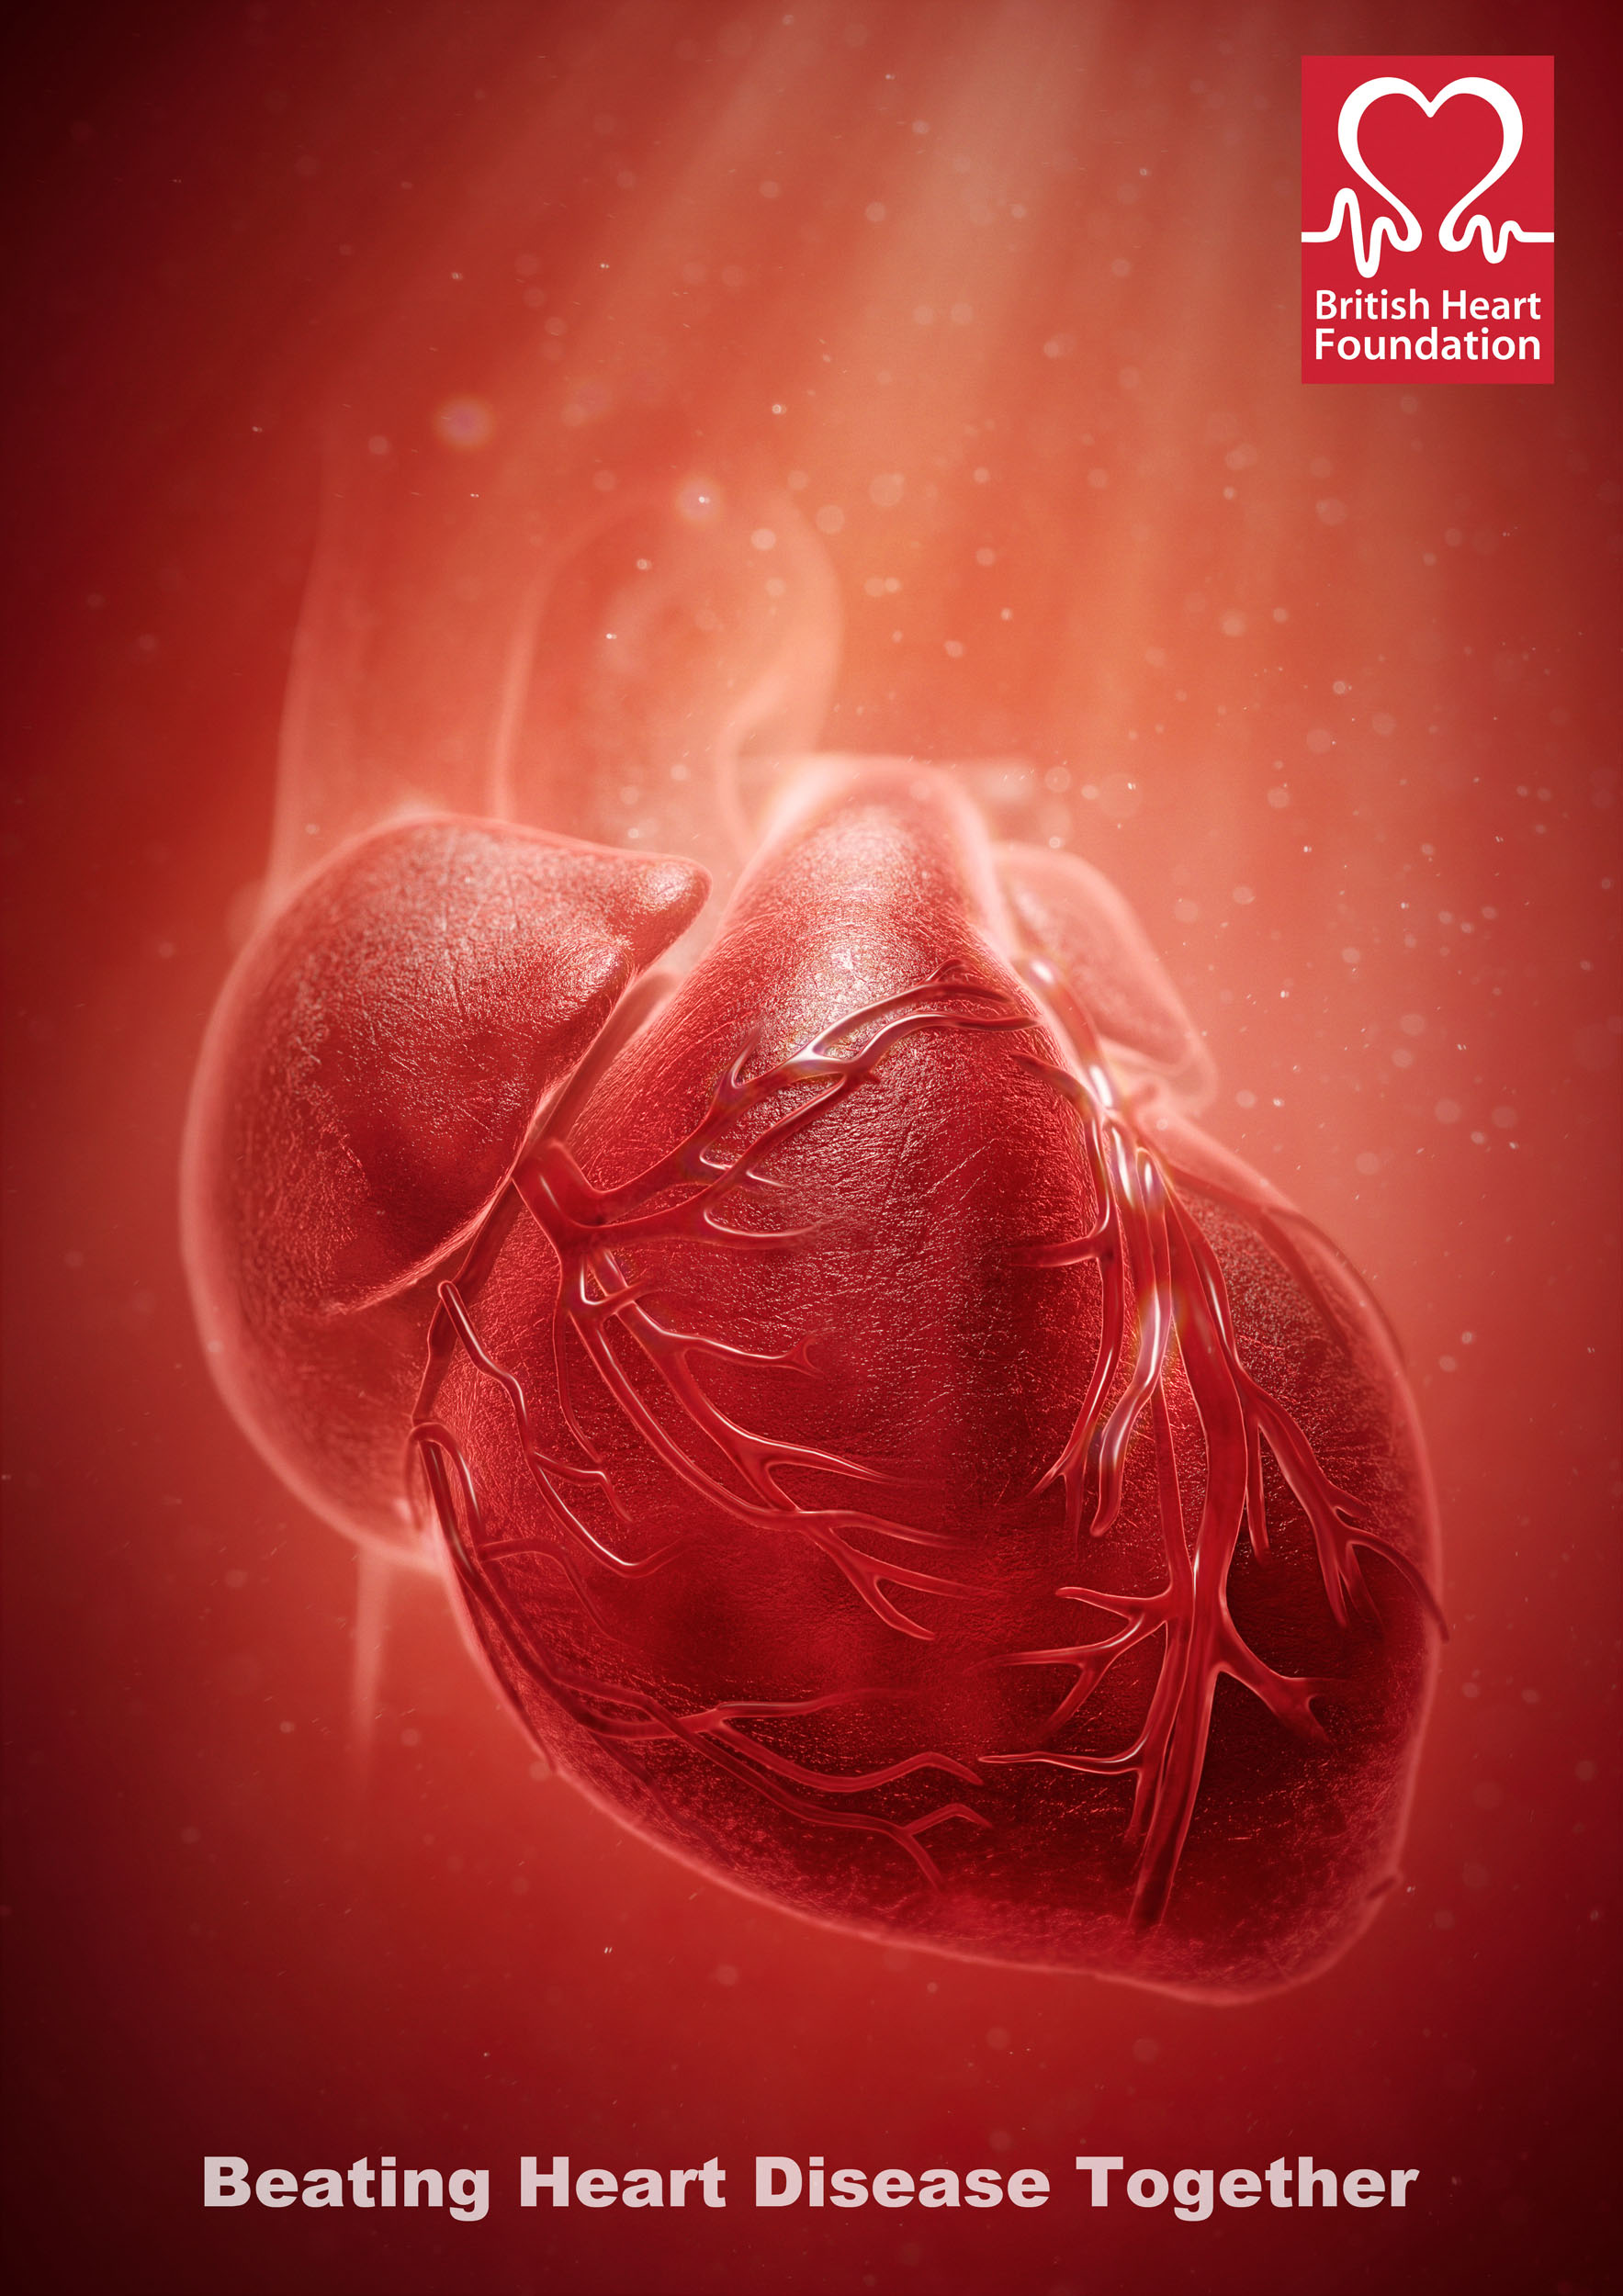 BOOM_CGI_MEDICAL_british-heart-foundation.jpg